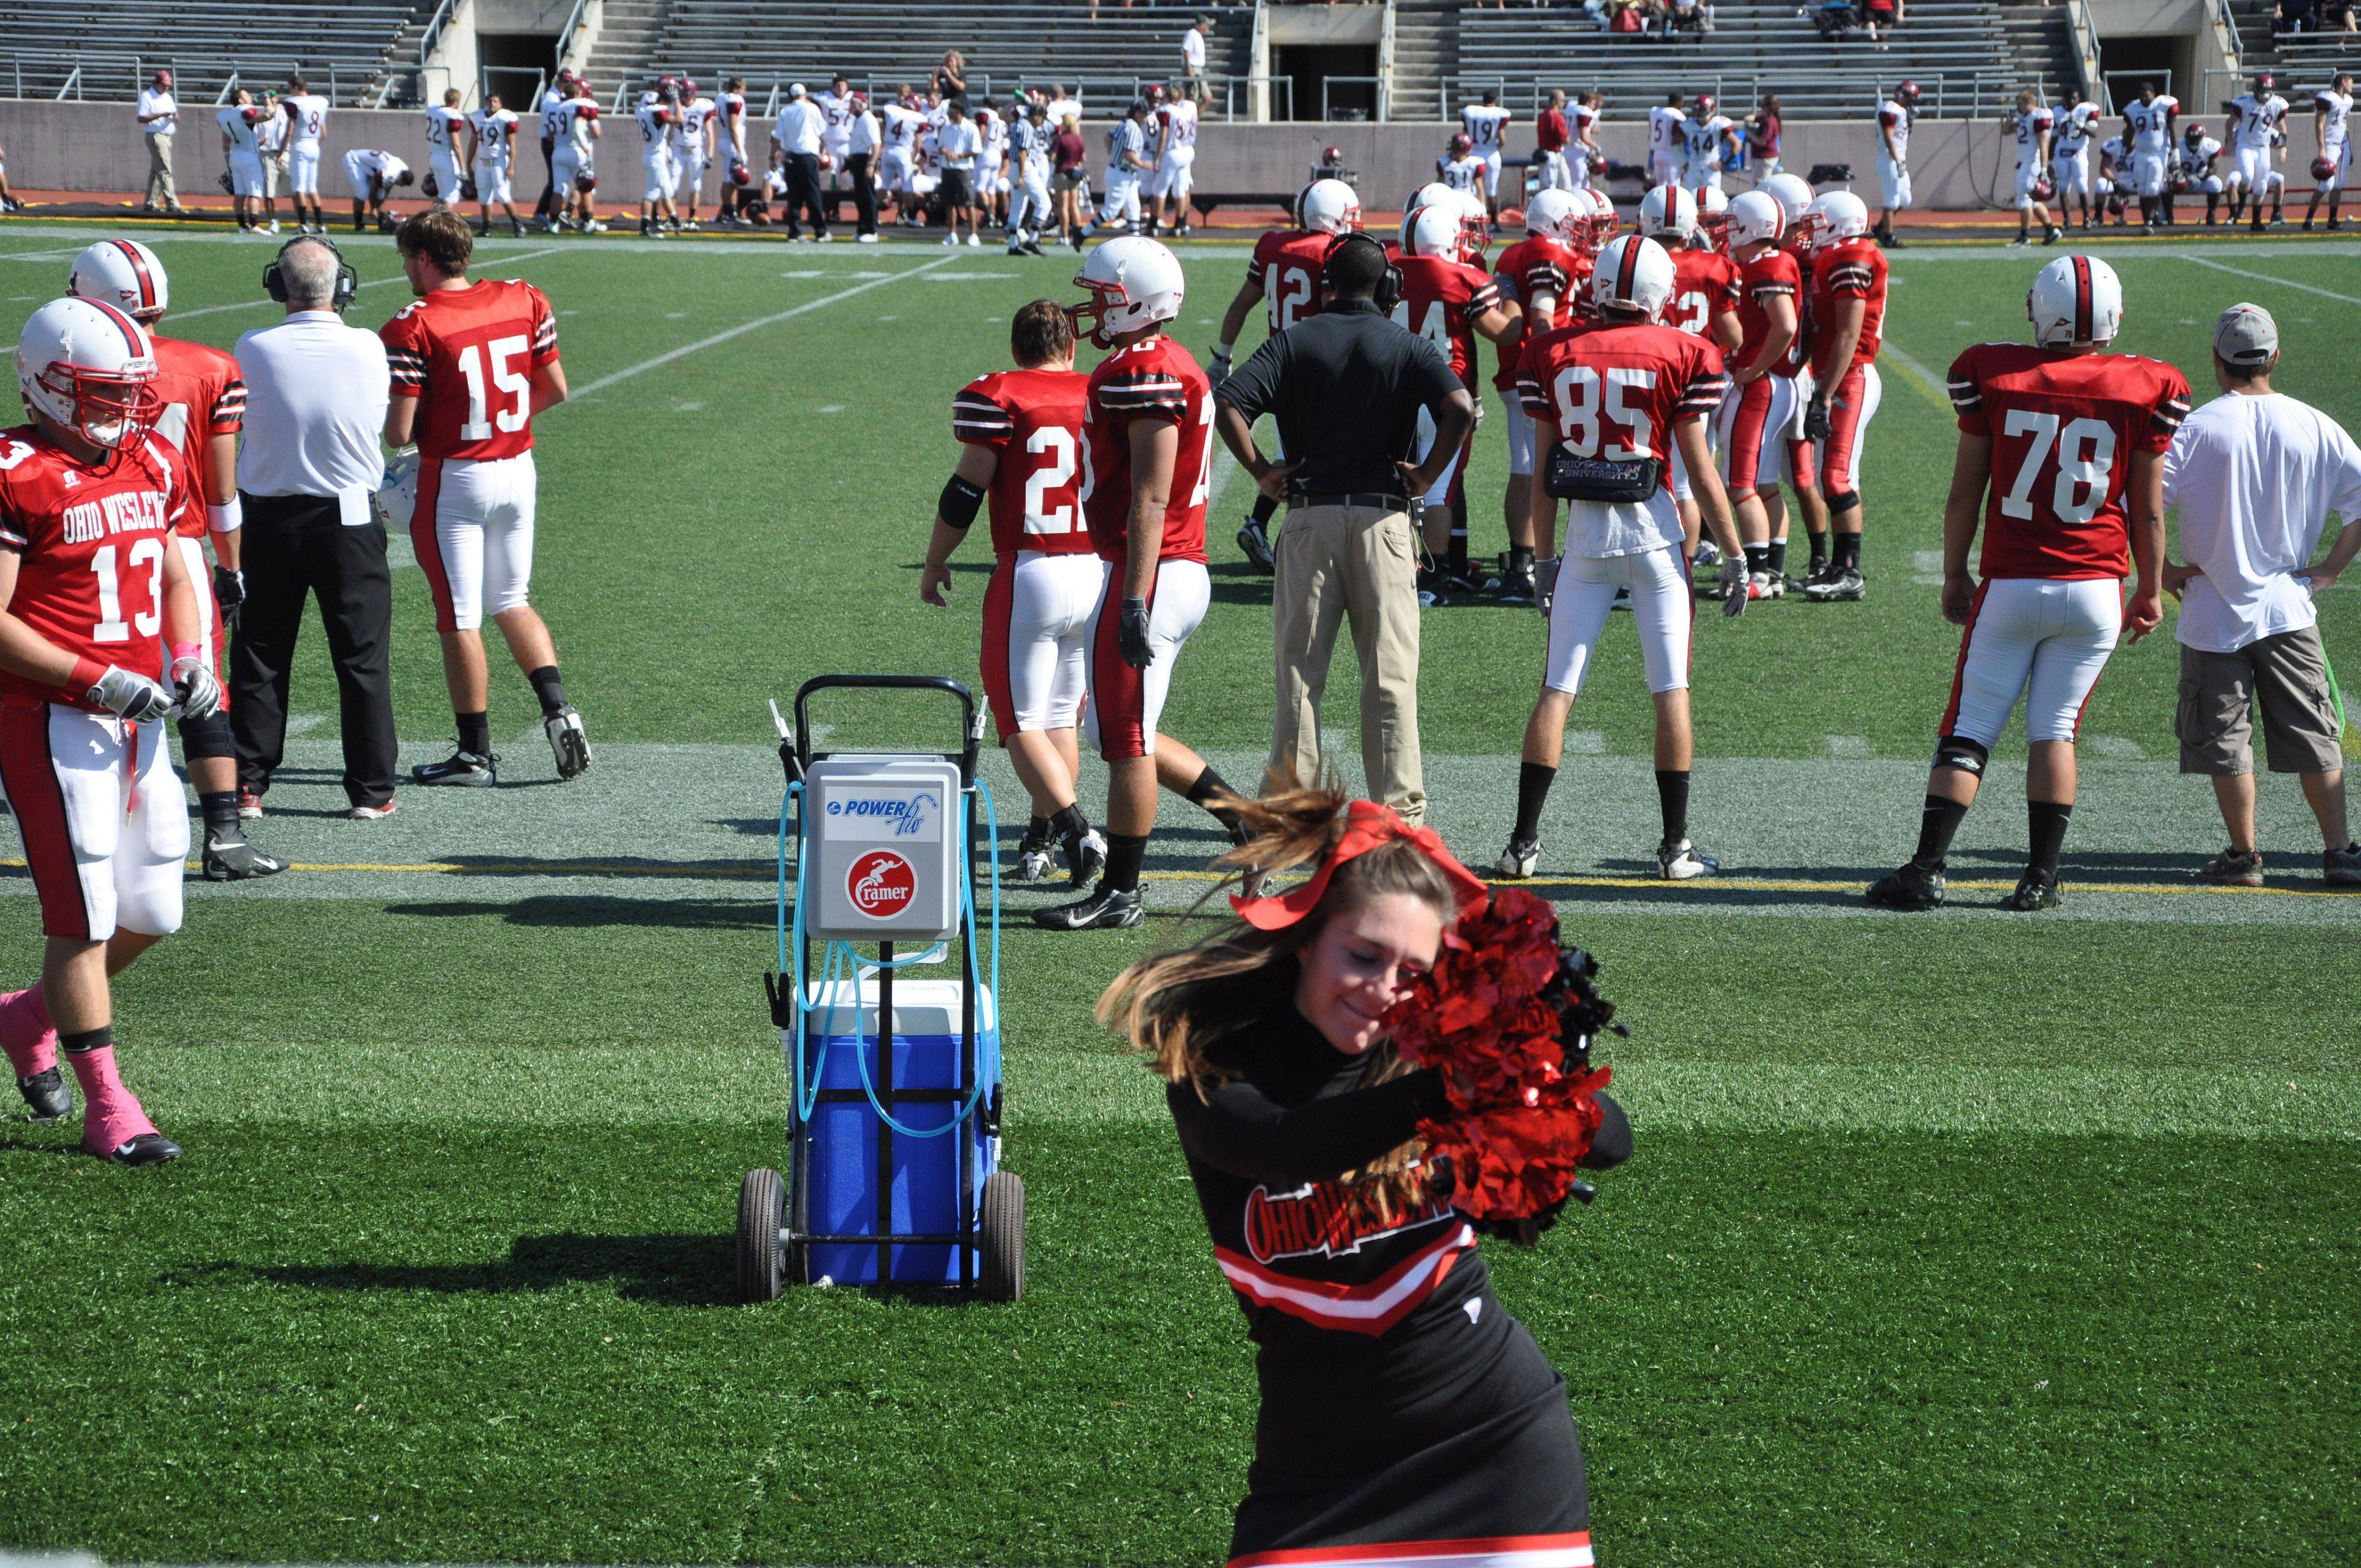 Cheerleader Emily LeTourneau fires up the crowd at the Ohio Wesleyan University Homecoming football game on October 9, 2010.